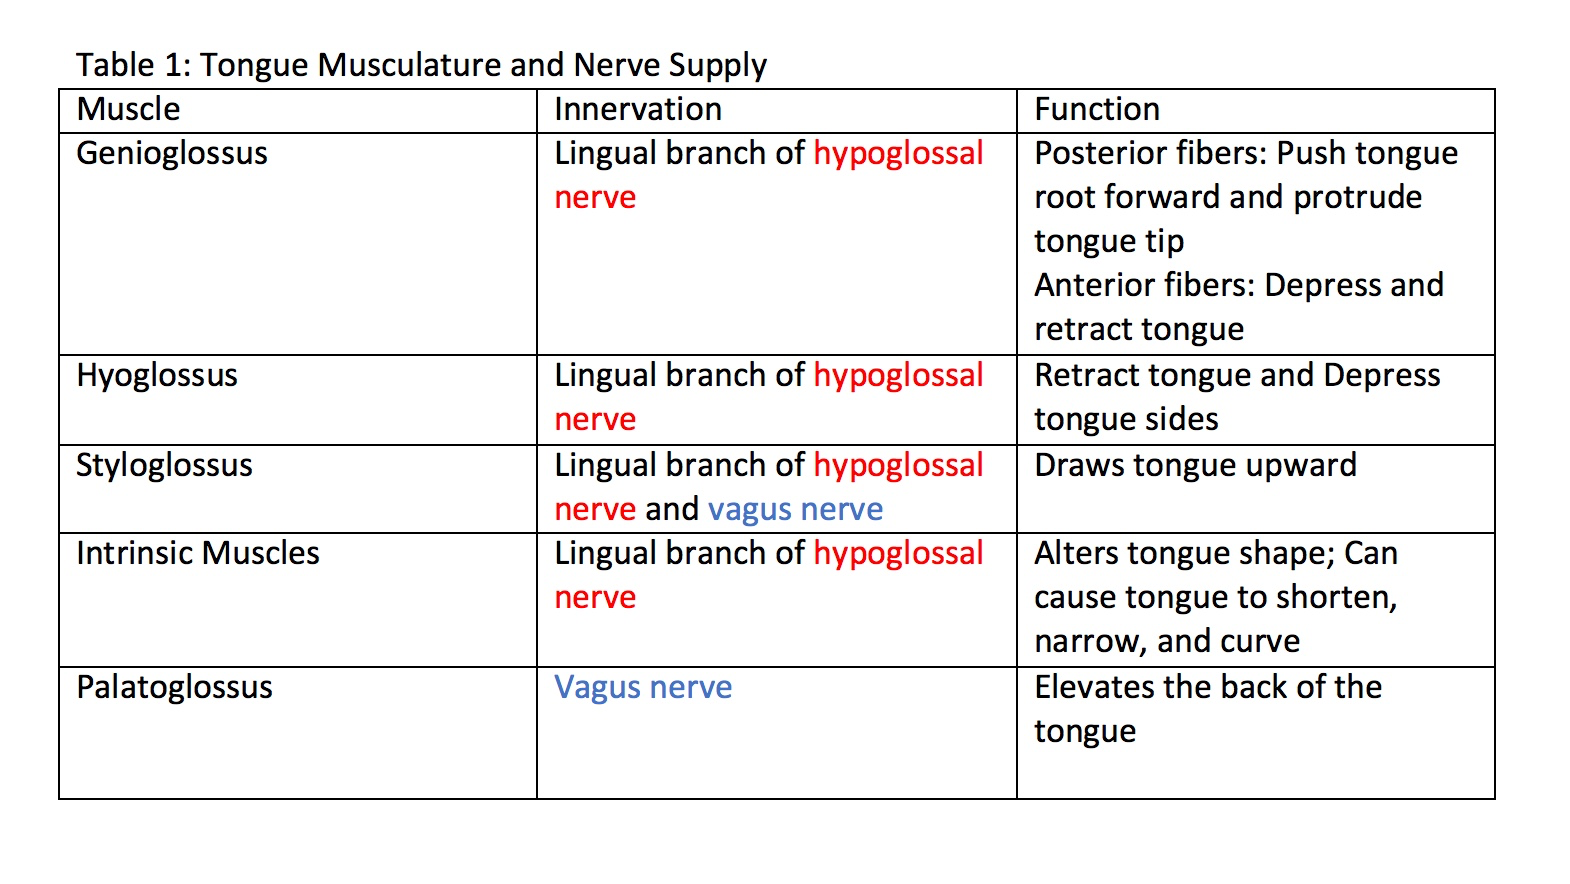 Table 1: Tongue Musculature and Nerve Supply